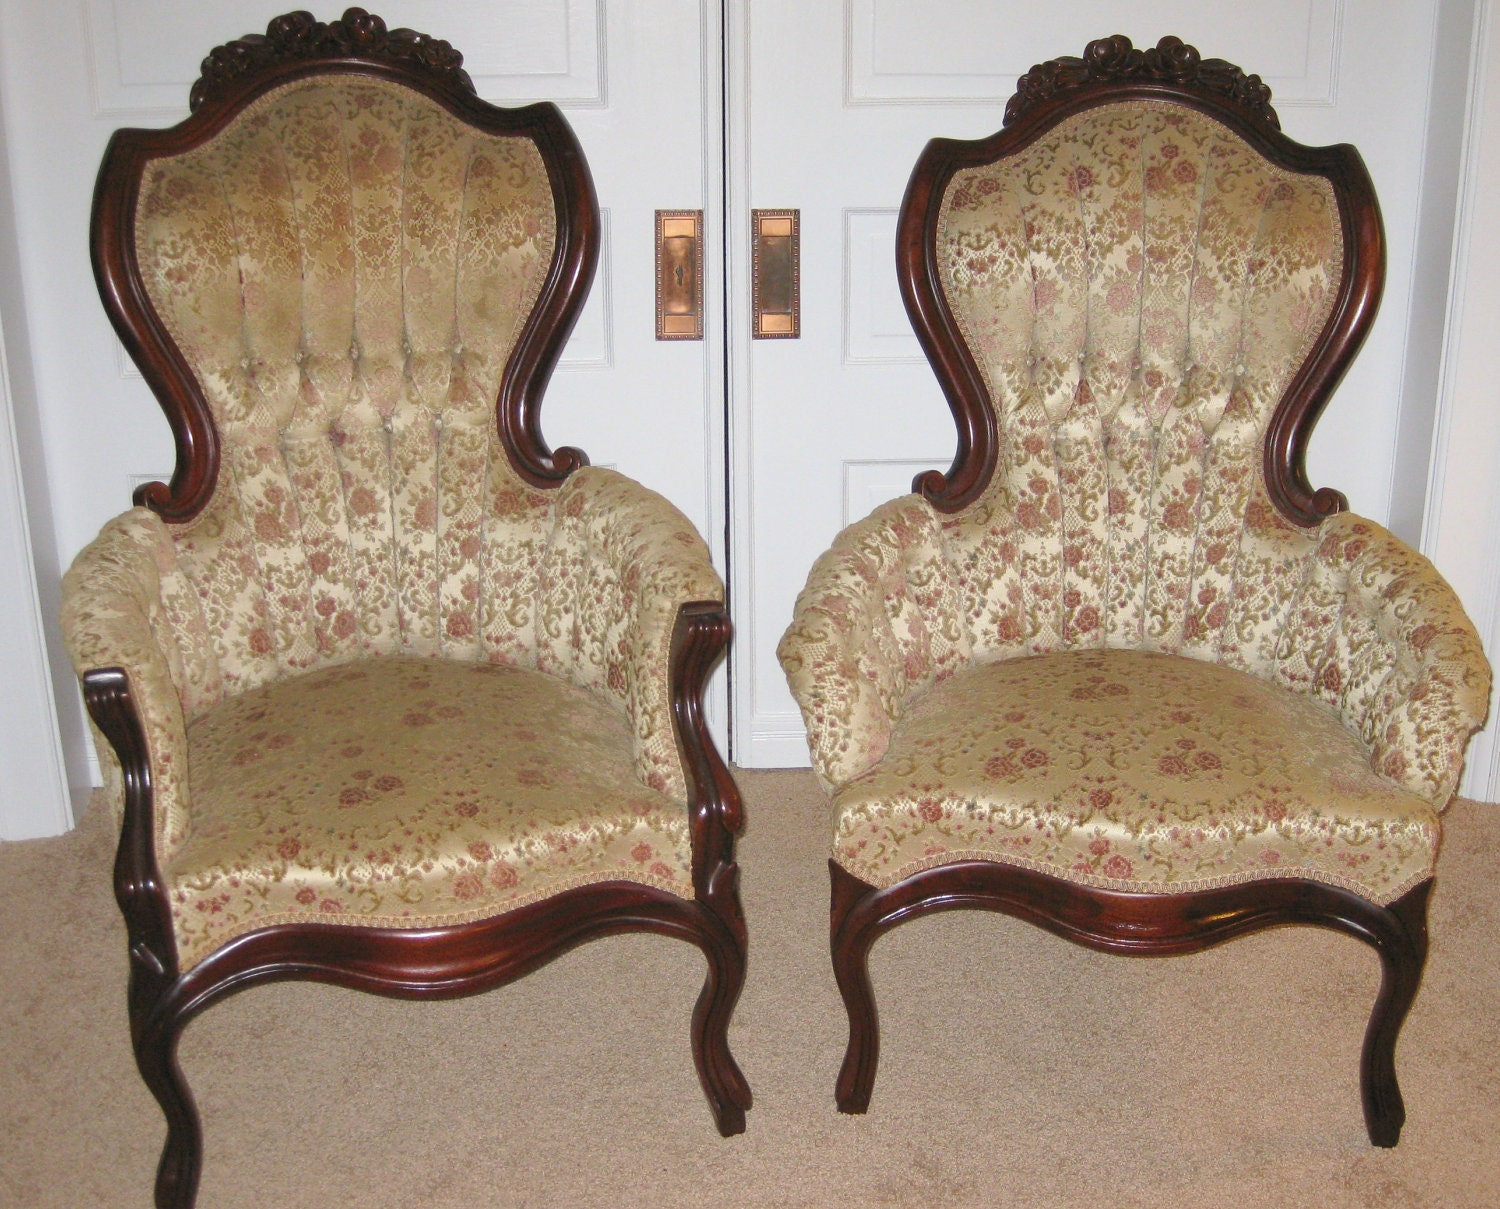 Antique victorian armchair -  Vintage Victorian King And Queen Chairs Zoom